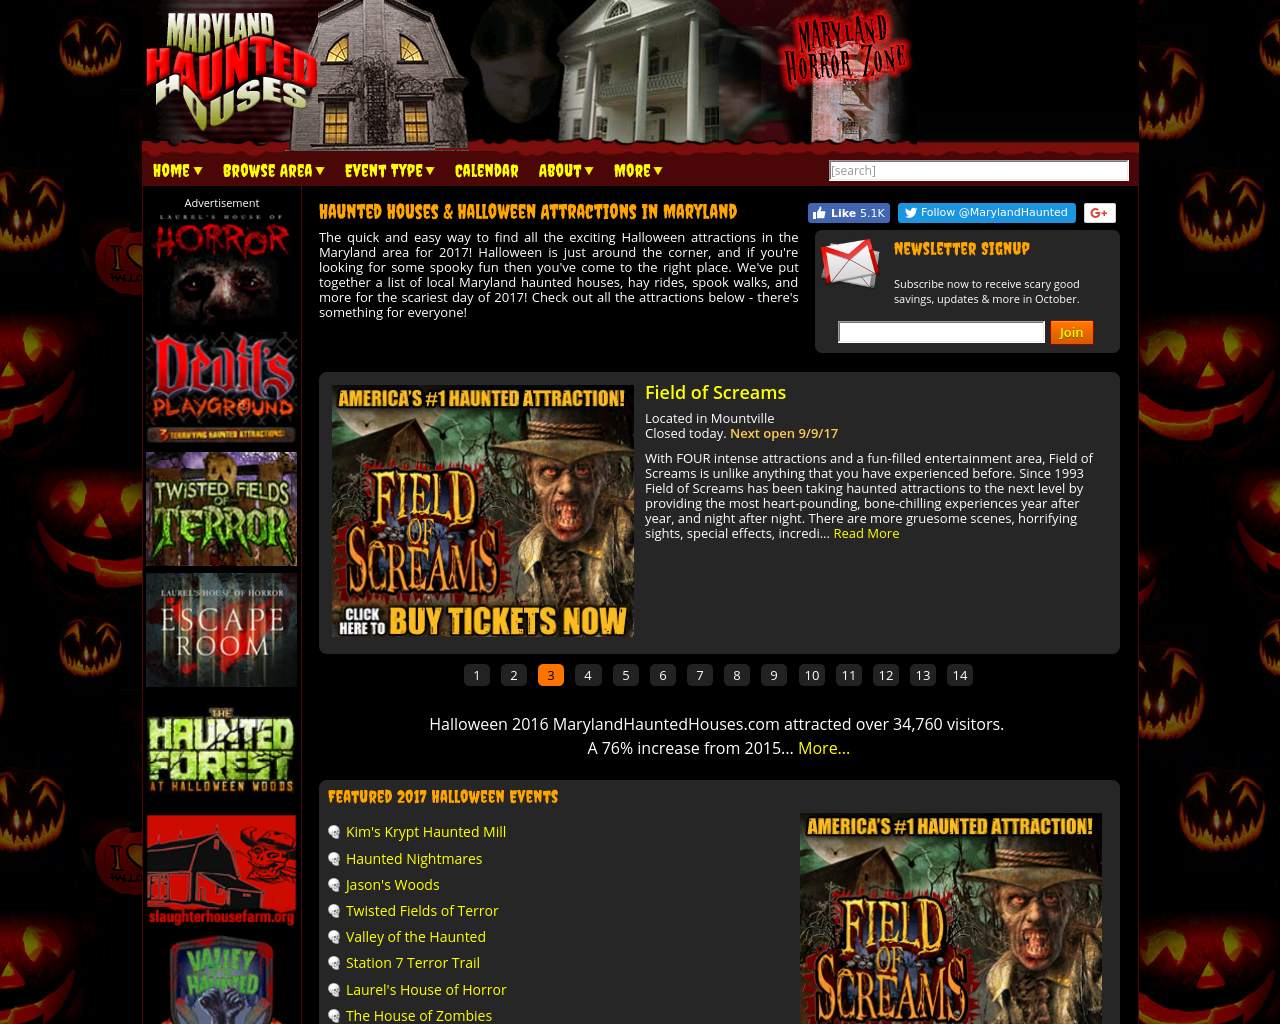 Maryland-Haunted-Houses-Advertising-Reviews-Pricing